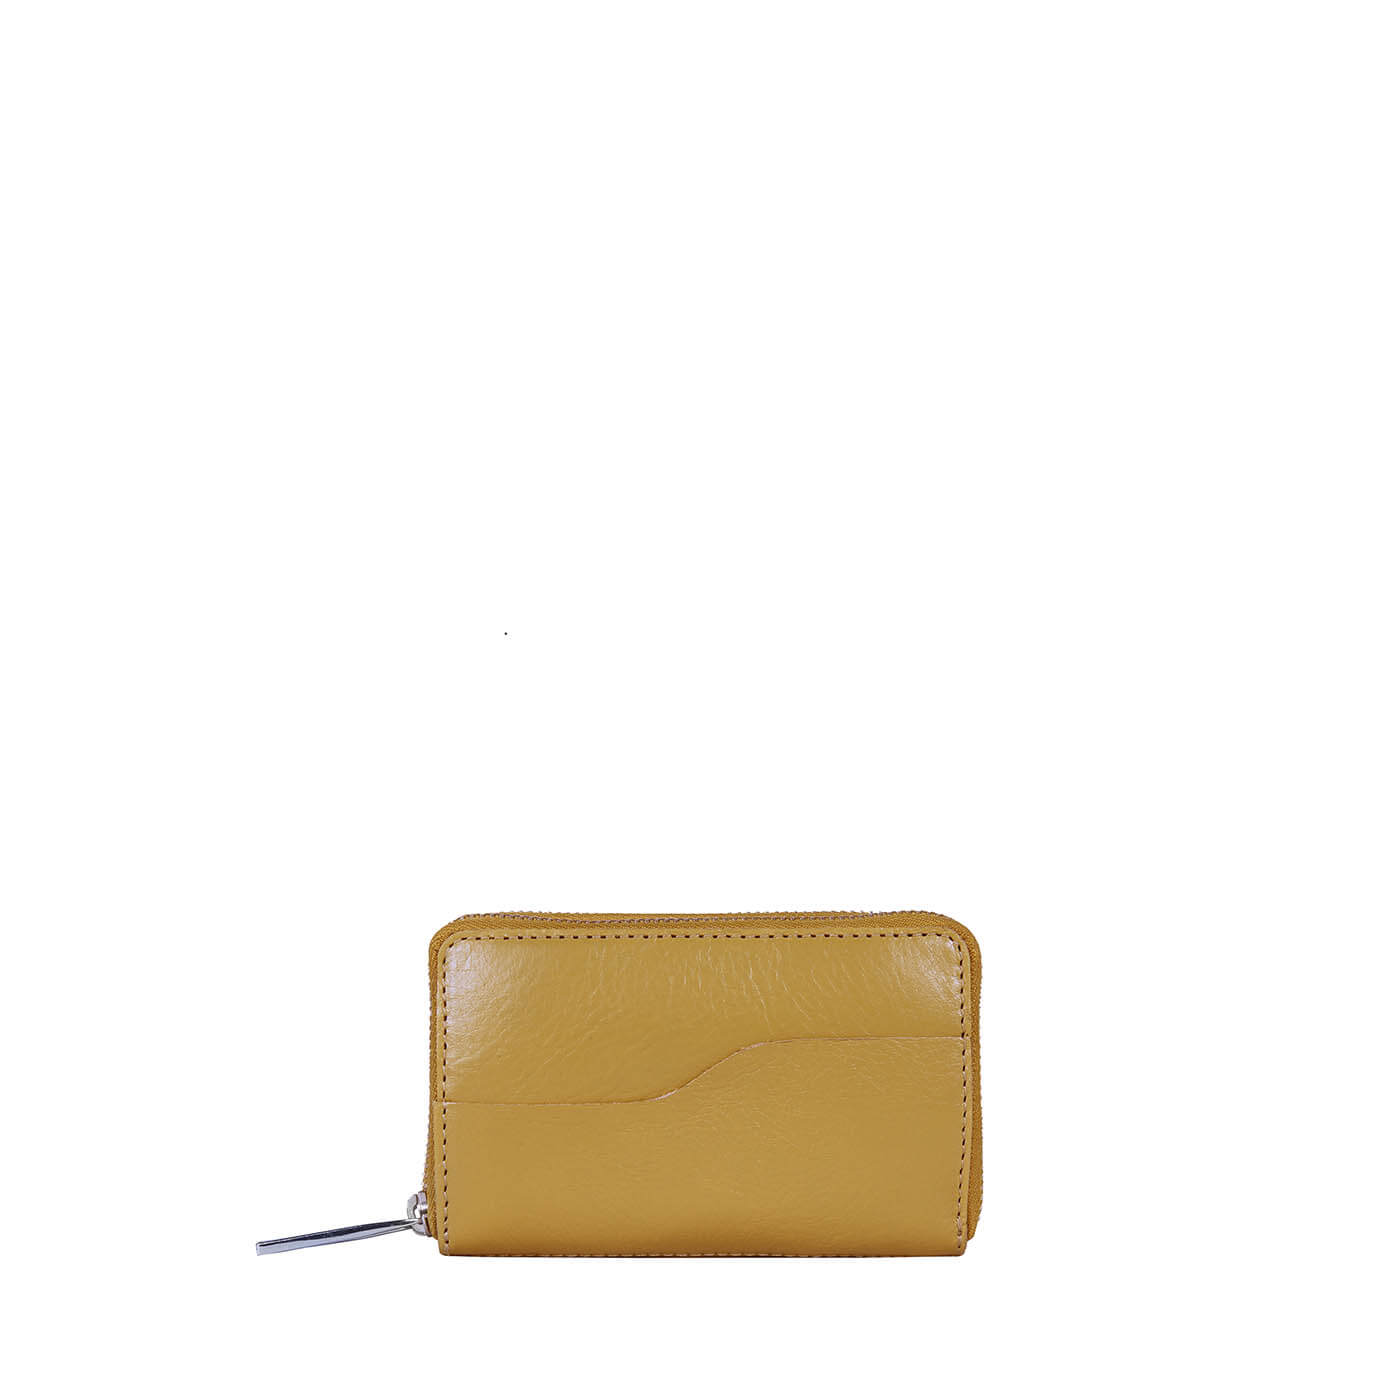 MYOMY - My Carry Bag Wallet Medium (RFID) - INGAR